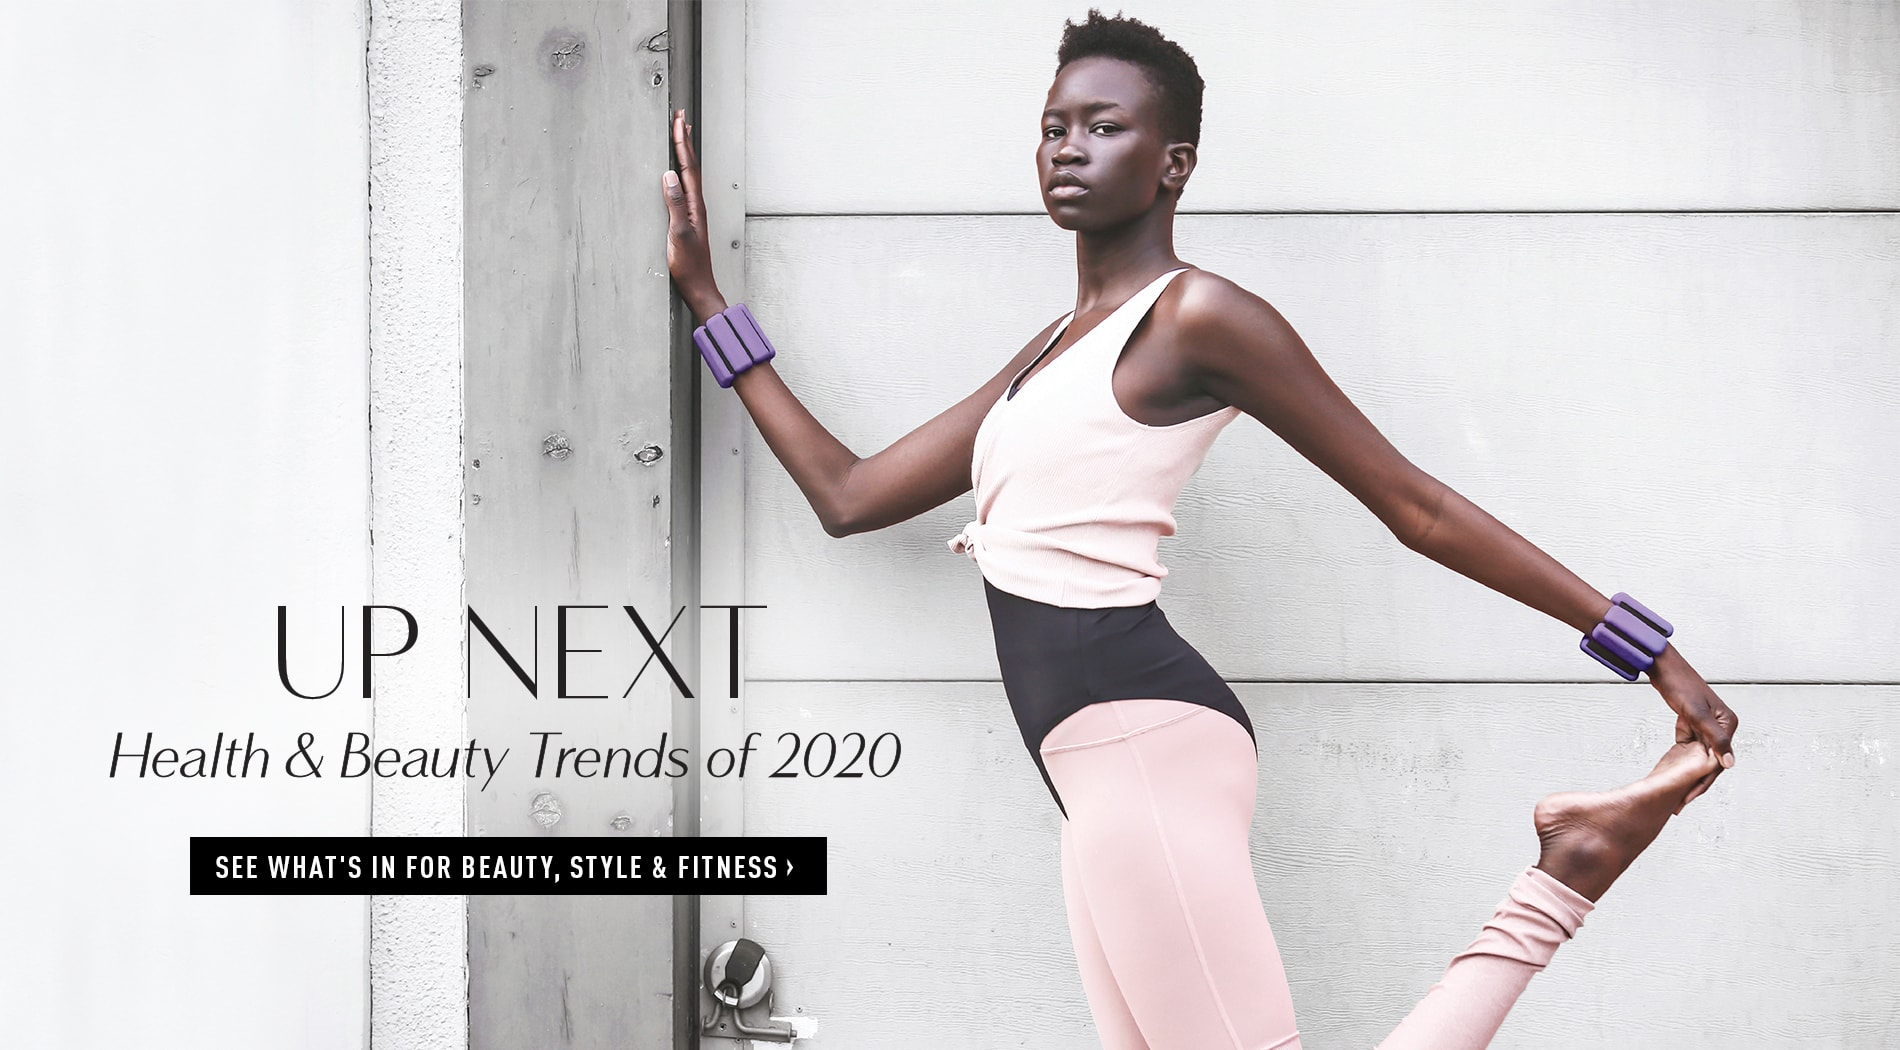 2020 Beauty Trends, 2020 health trends, 2020 workout trends, bala bangles